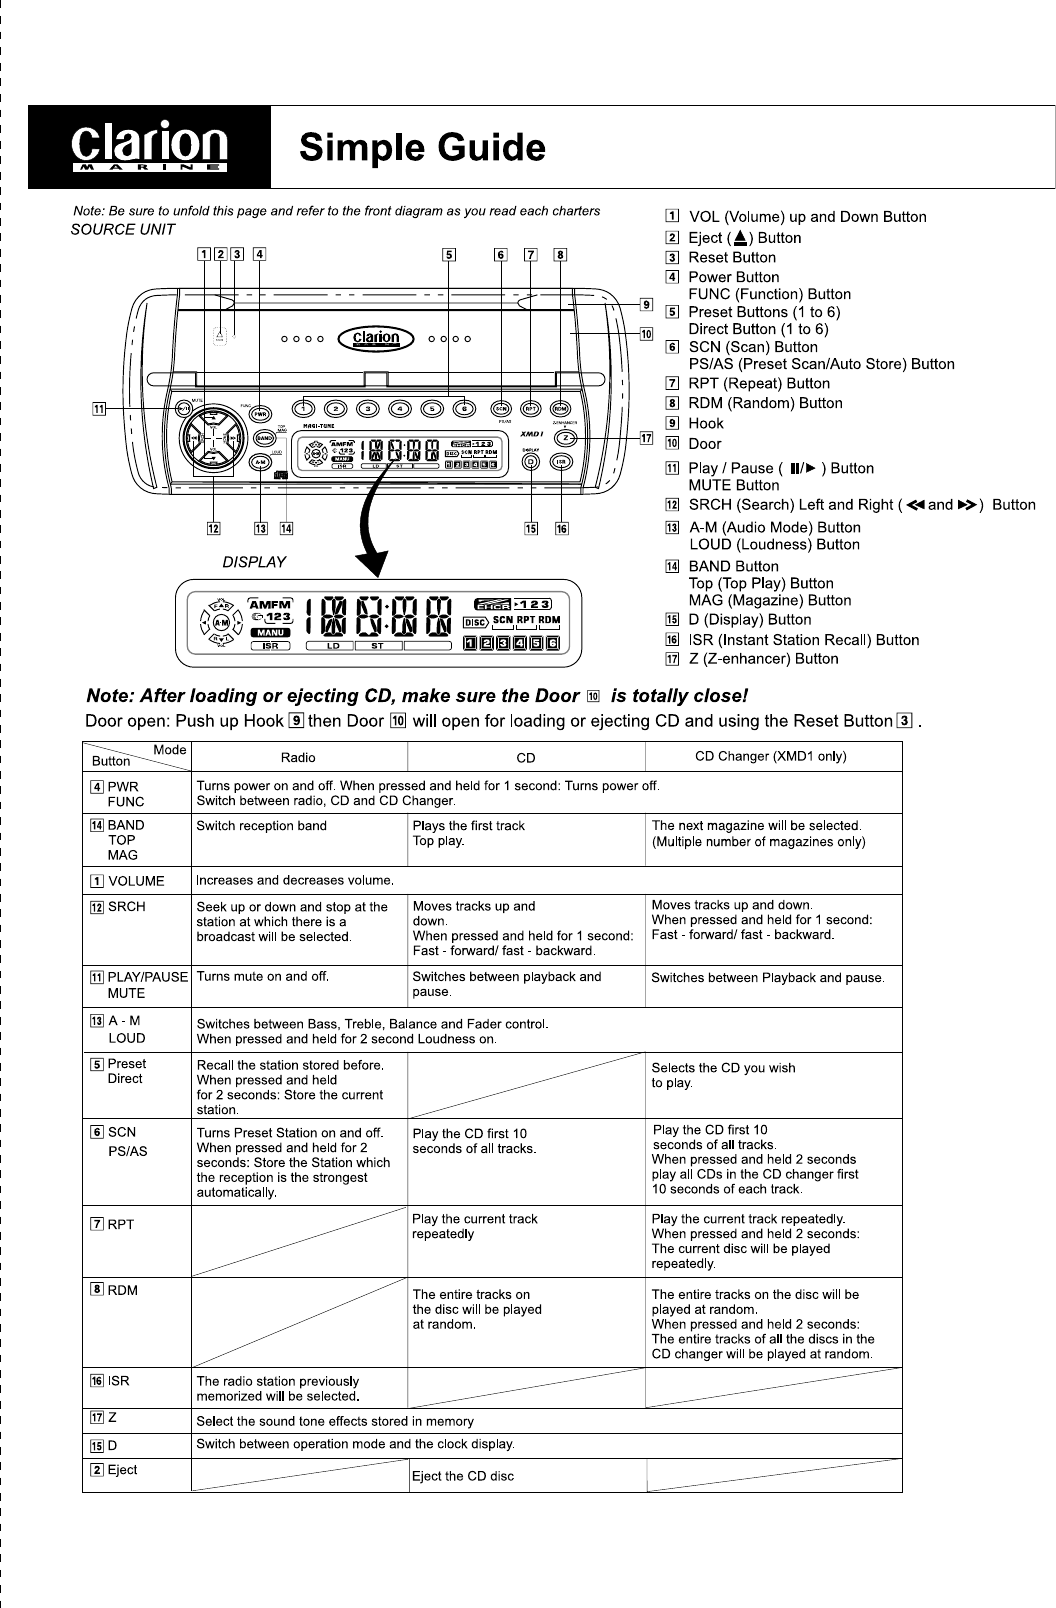 page 13 of clarion cd player xmd2 user guide manualsonline com rh audio manualsonline com Clarion XMD1 Remote Clarion XMD1 Remote